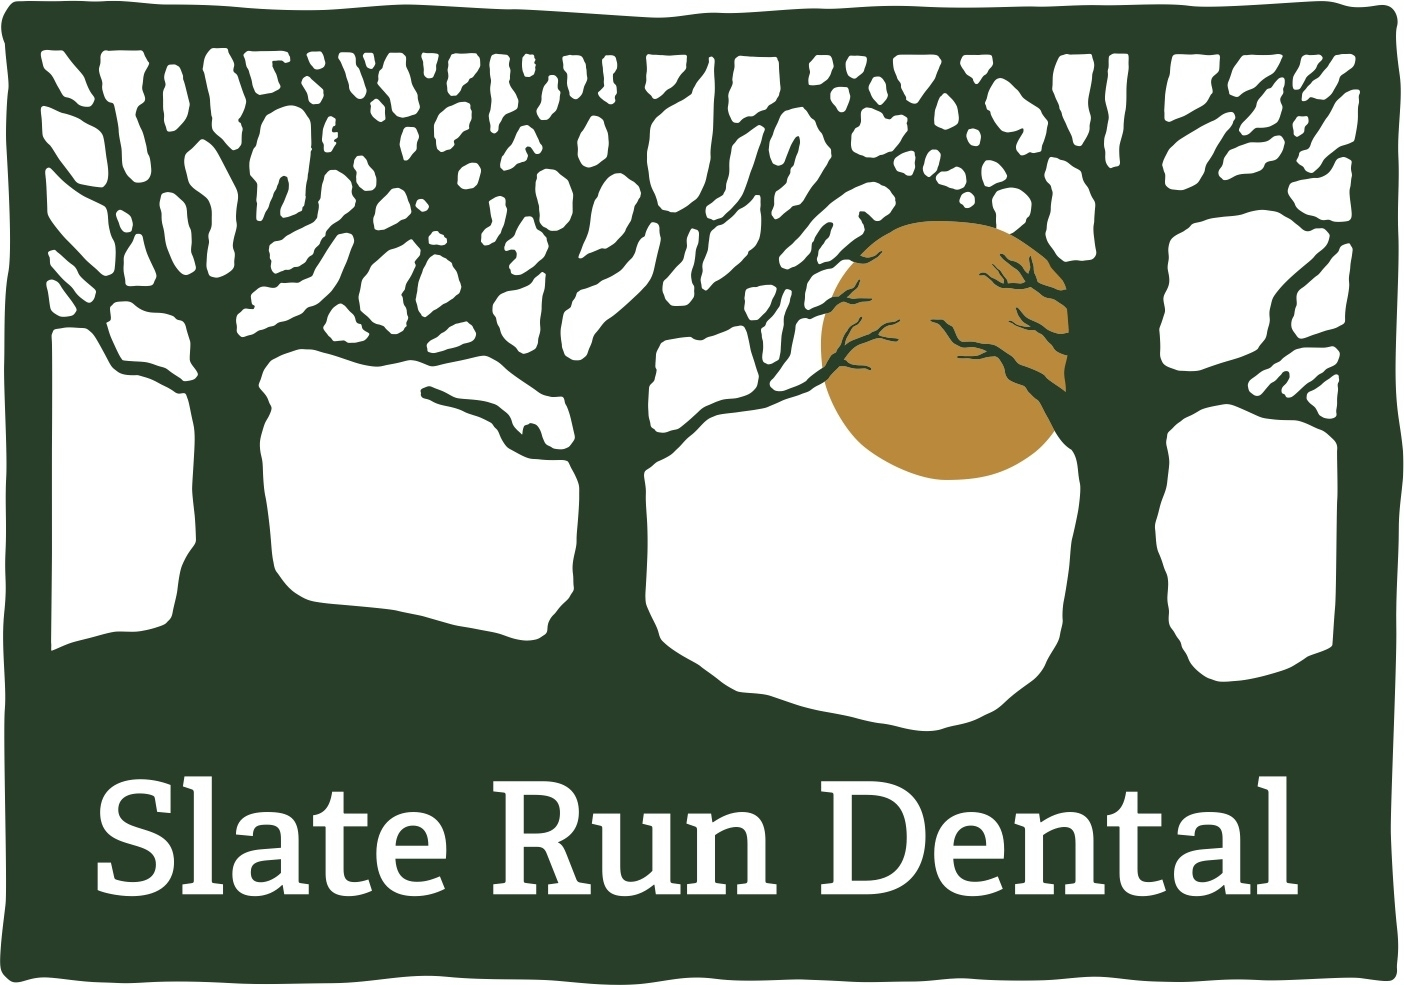 Slate Run Dental